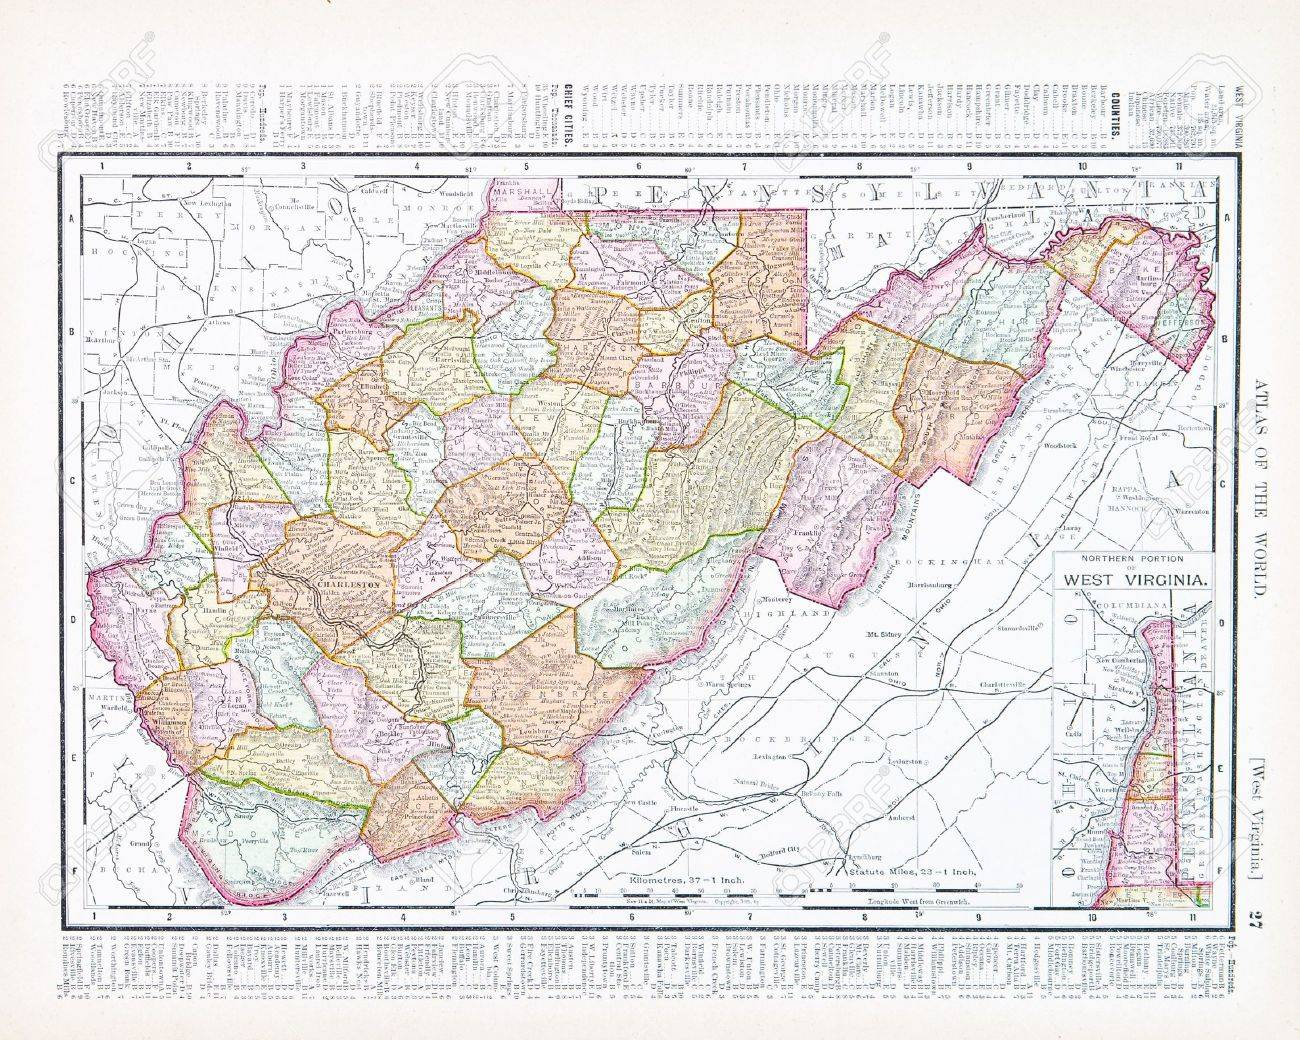 Vintage Map Of The State Of West Virginia, USA, 1900 Stock Photo ...